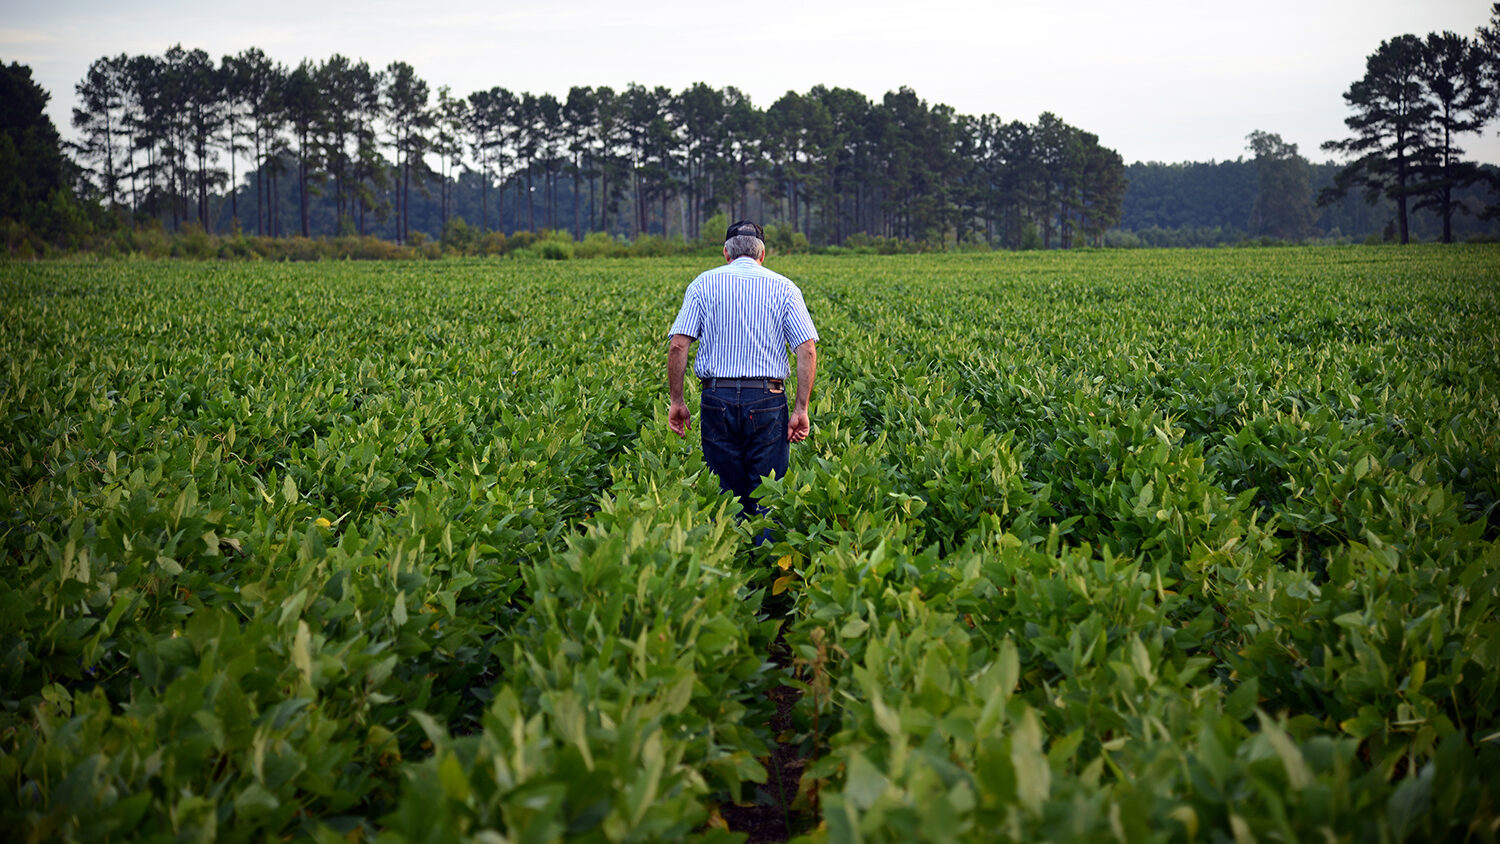 A farmer walks through a line of crops.